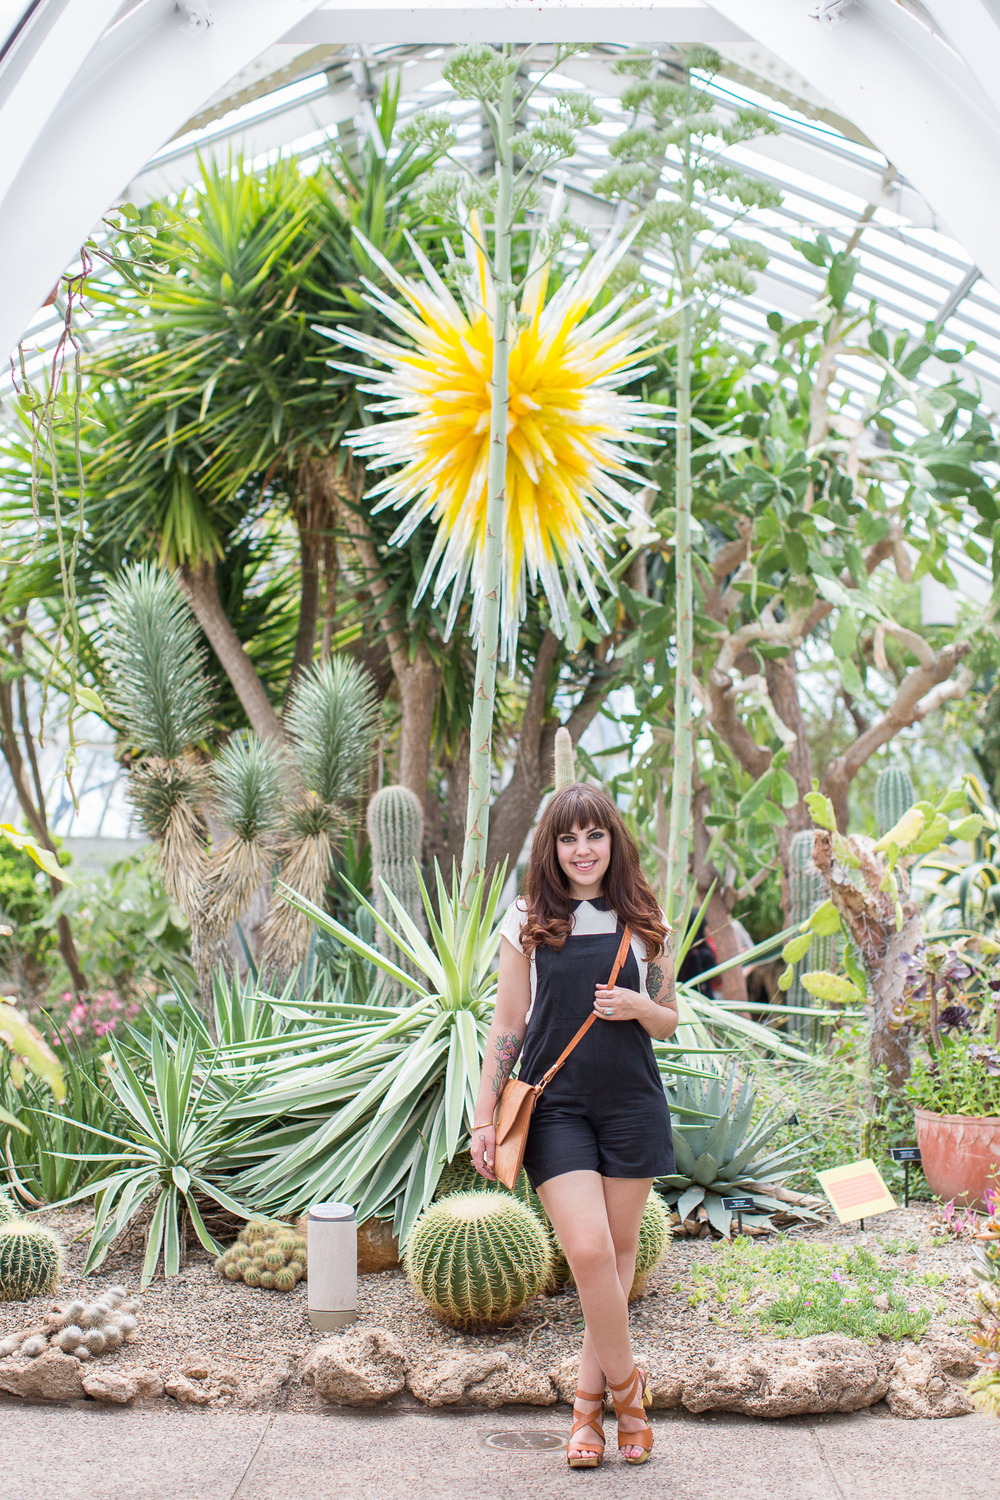 Emily Slagel photographed by Laila Archuleta in the Desert Room at Phipps Conservatory